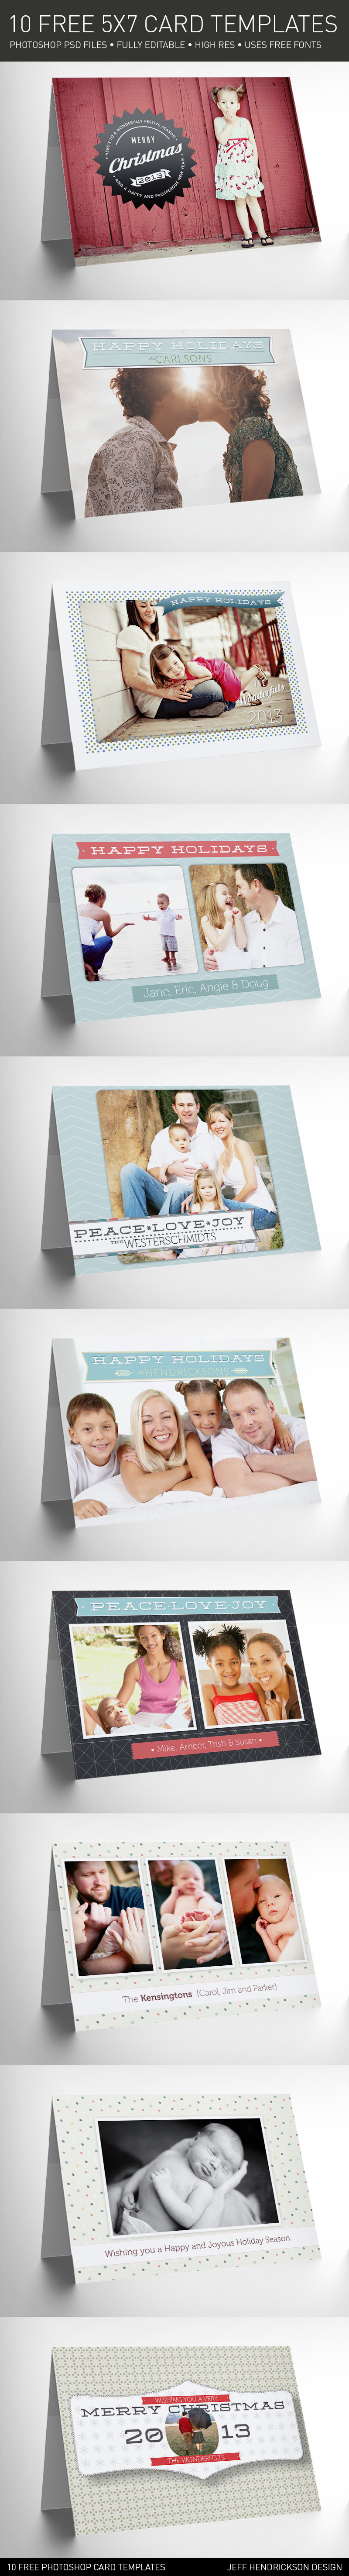 10 Free Hi Res Greeting Card Templates For Photographers Photography Freebies Holiday Card Pictures Photoshop Photography